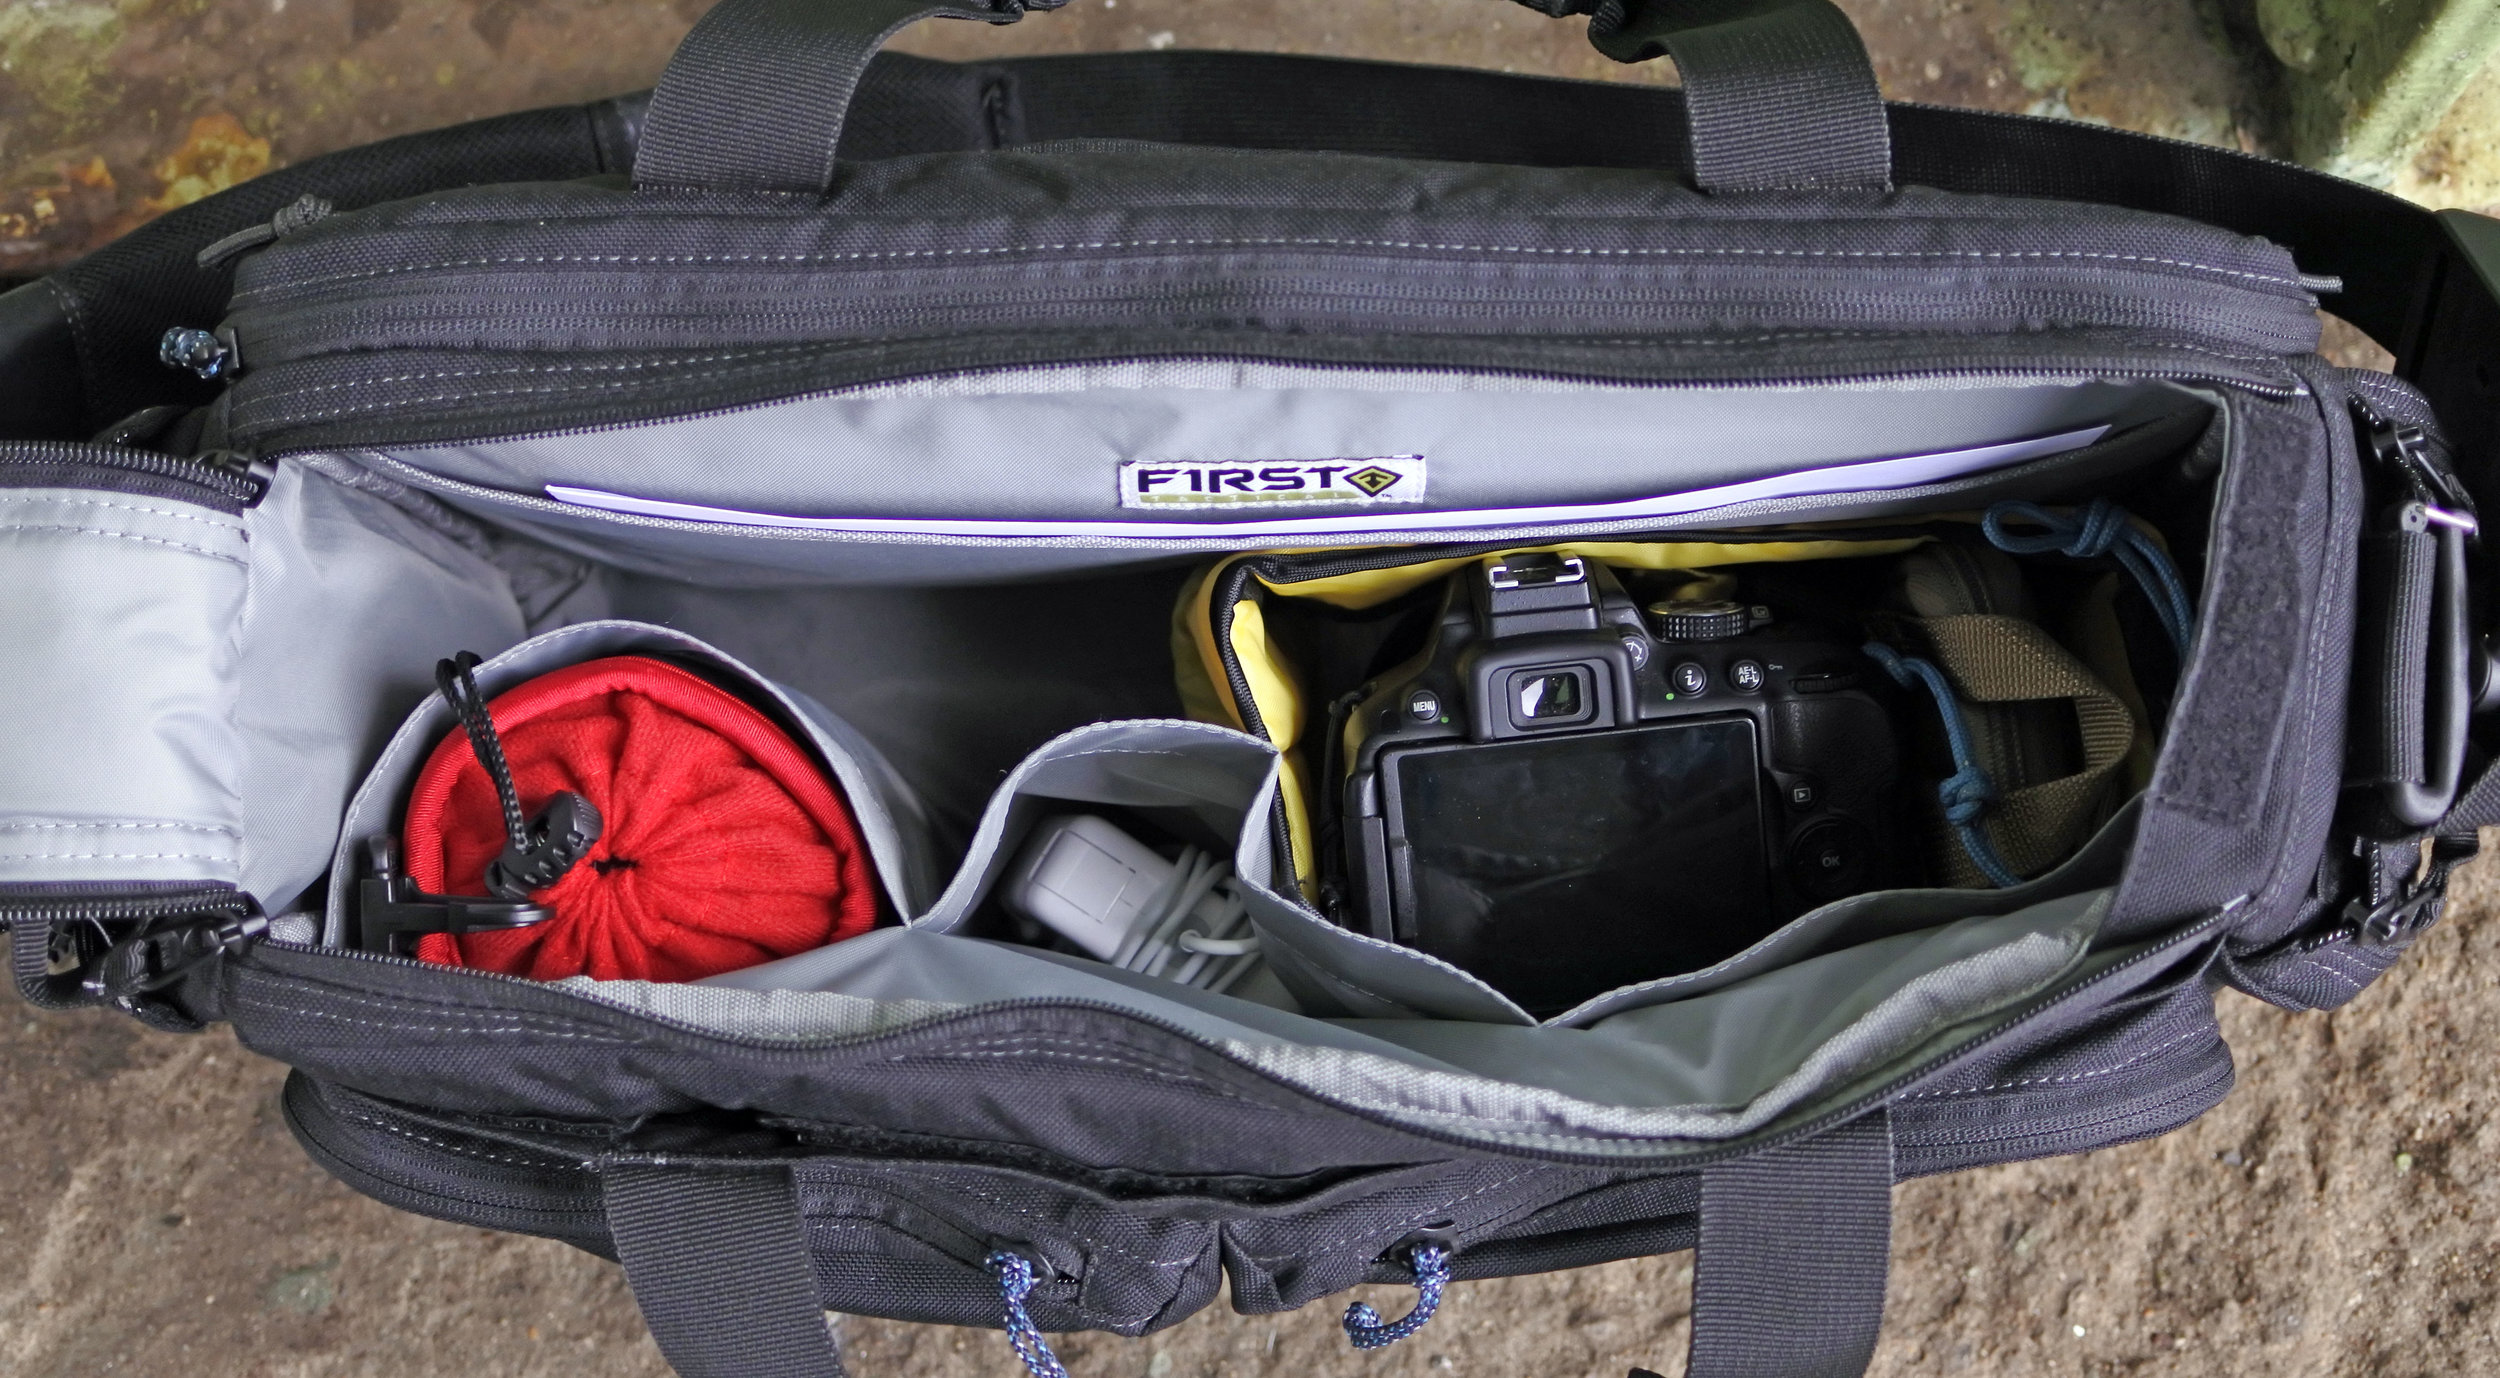 Looking into the bag from above. There are 3 open top pockets on the front wall and a document sized sleeve on the rear.